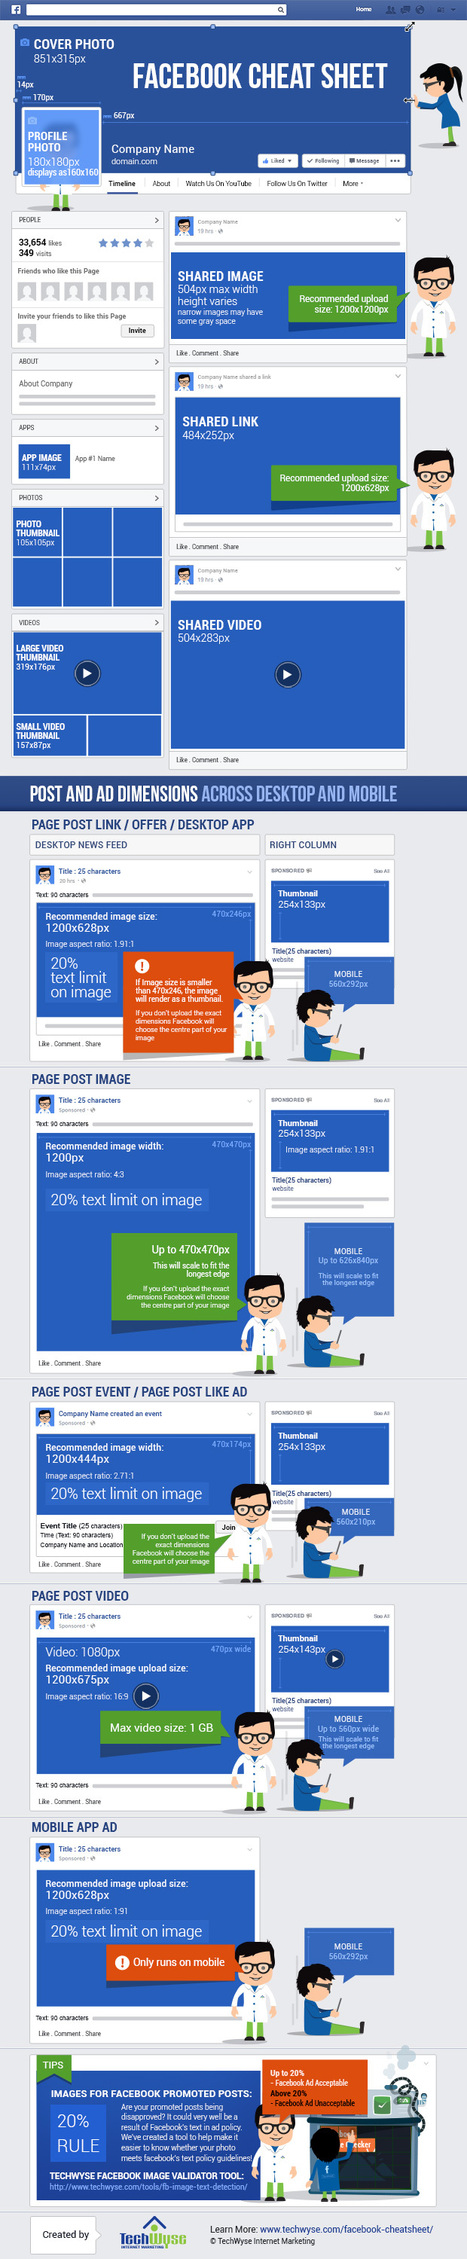 Facebook Cheat Sheet: Image Size and Dimensions UPDATED! - TechWyse | Digital | Scoop.it